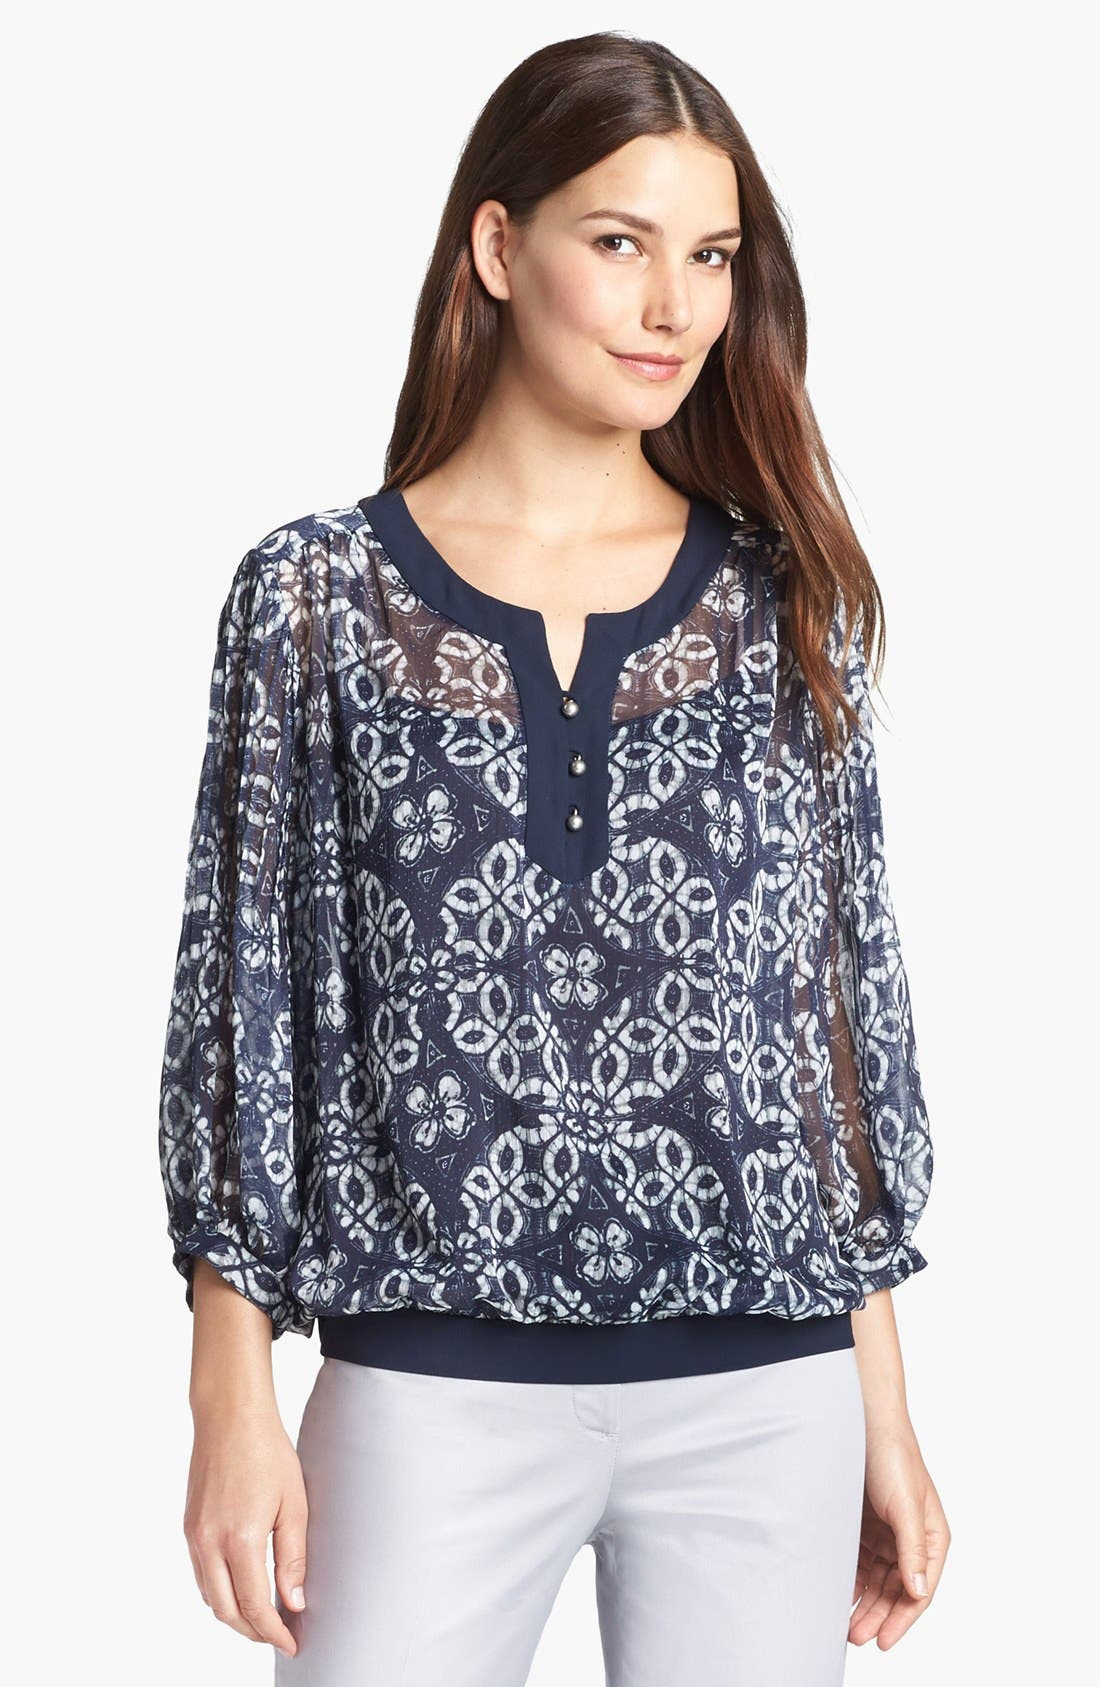 Alternate Image 1 Selected - Adrianna Papell Crinkled Chiffon Blouse with Camisole